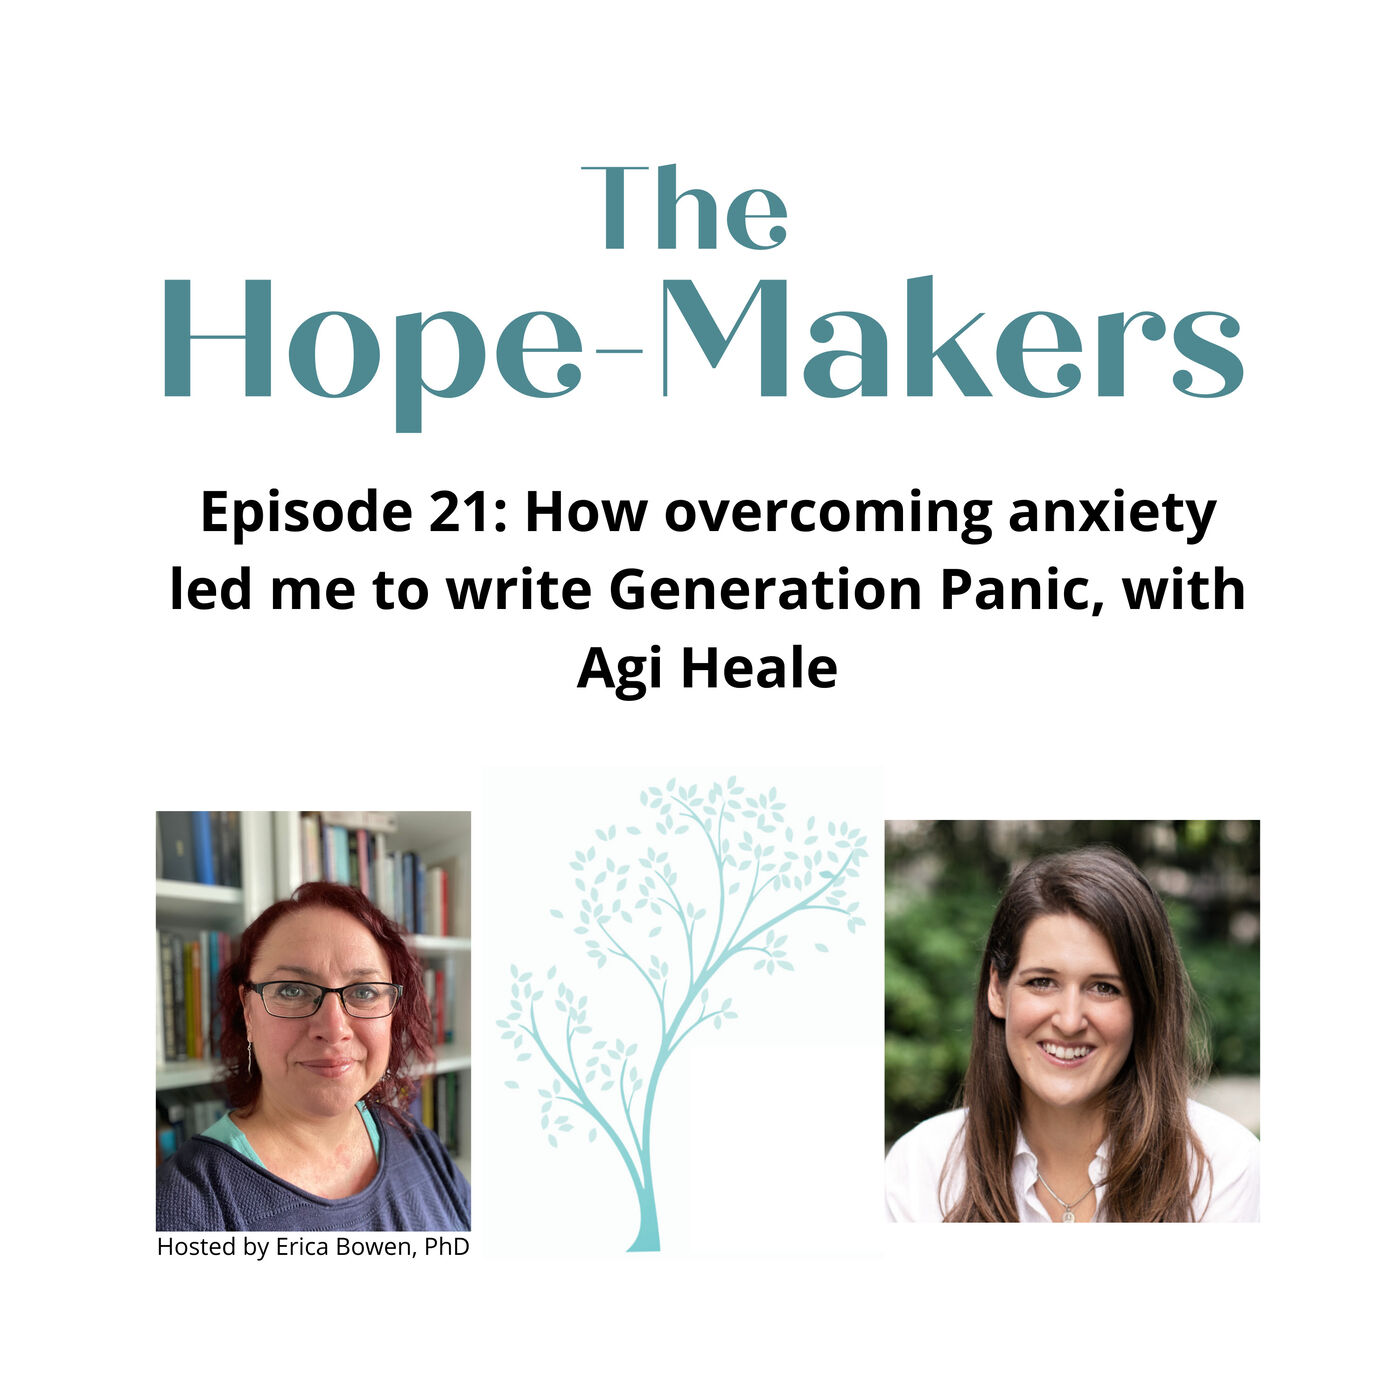 Episode 21: How overcoming anxiety led me to write Generation Panic, with Agi Heale